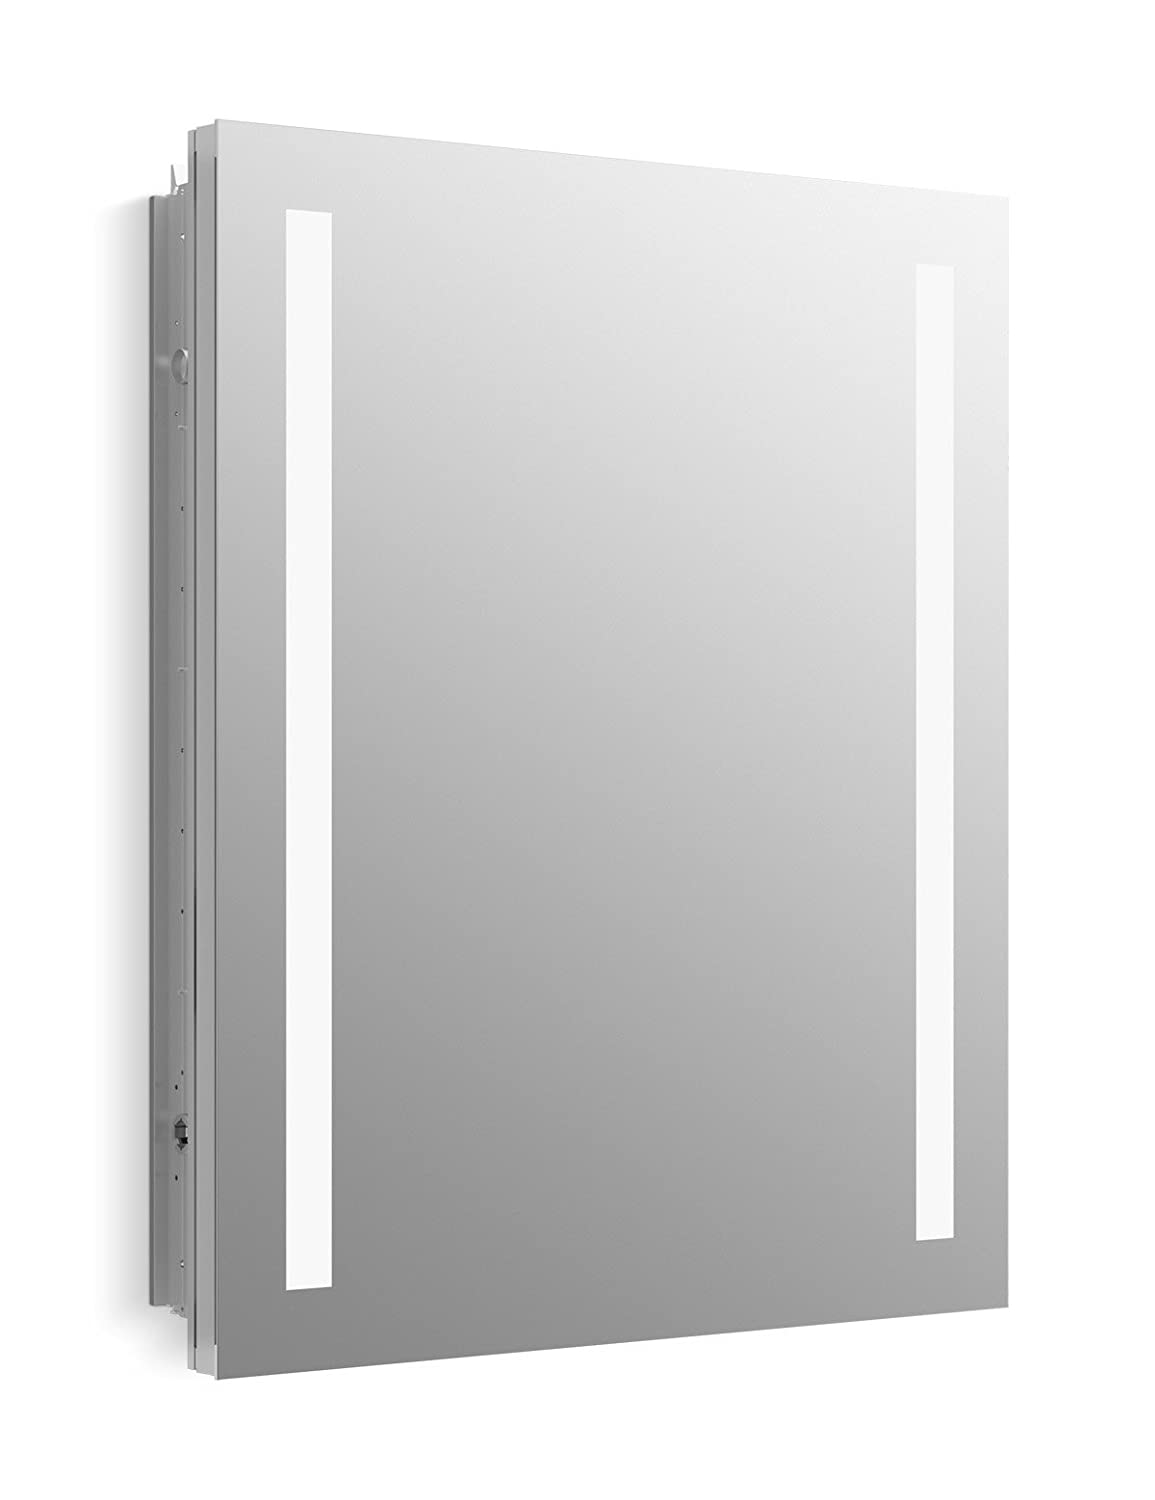 Super Kohler K 99007 Tl Na Verdera 24 Inch X 30 Inch Led Lighted Bathroom Medicine Cabinet Slow Close Hinge Internal Magnifying Mirror Aluminum Recess Download Free Architecture Designs Sospemadebymaigaardcom